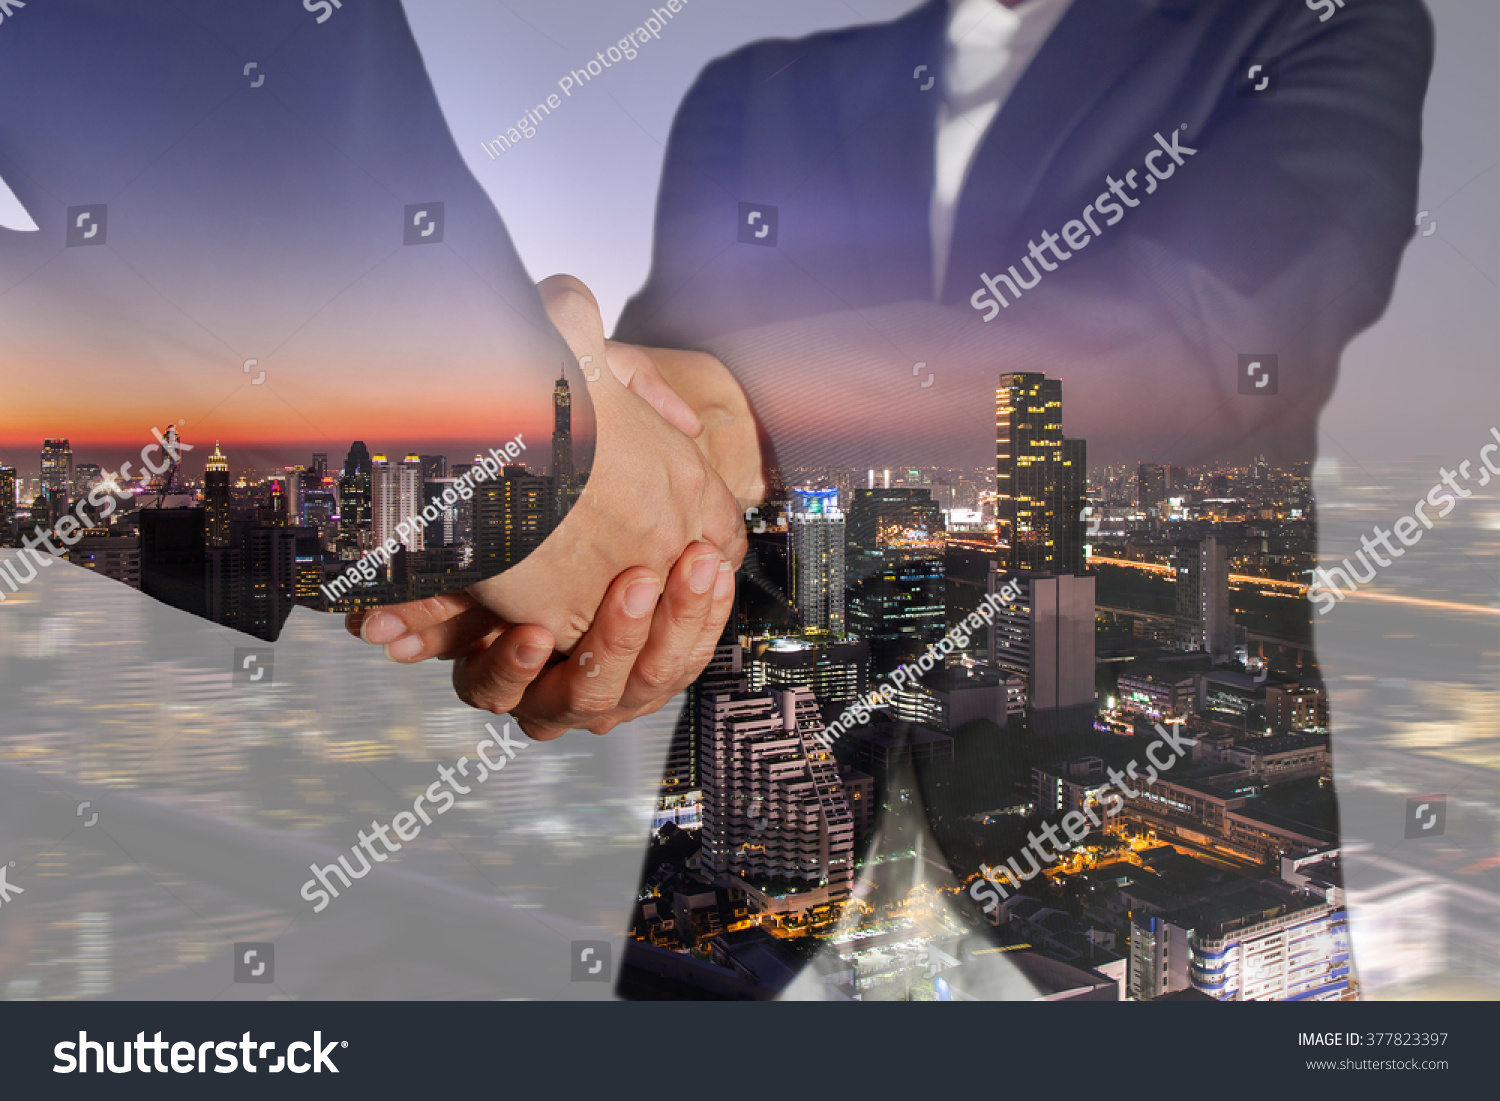 Double exposure of business women double handshake night street and city on camera zoom background as welcome concept. #377823397